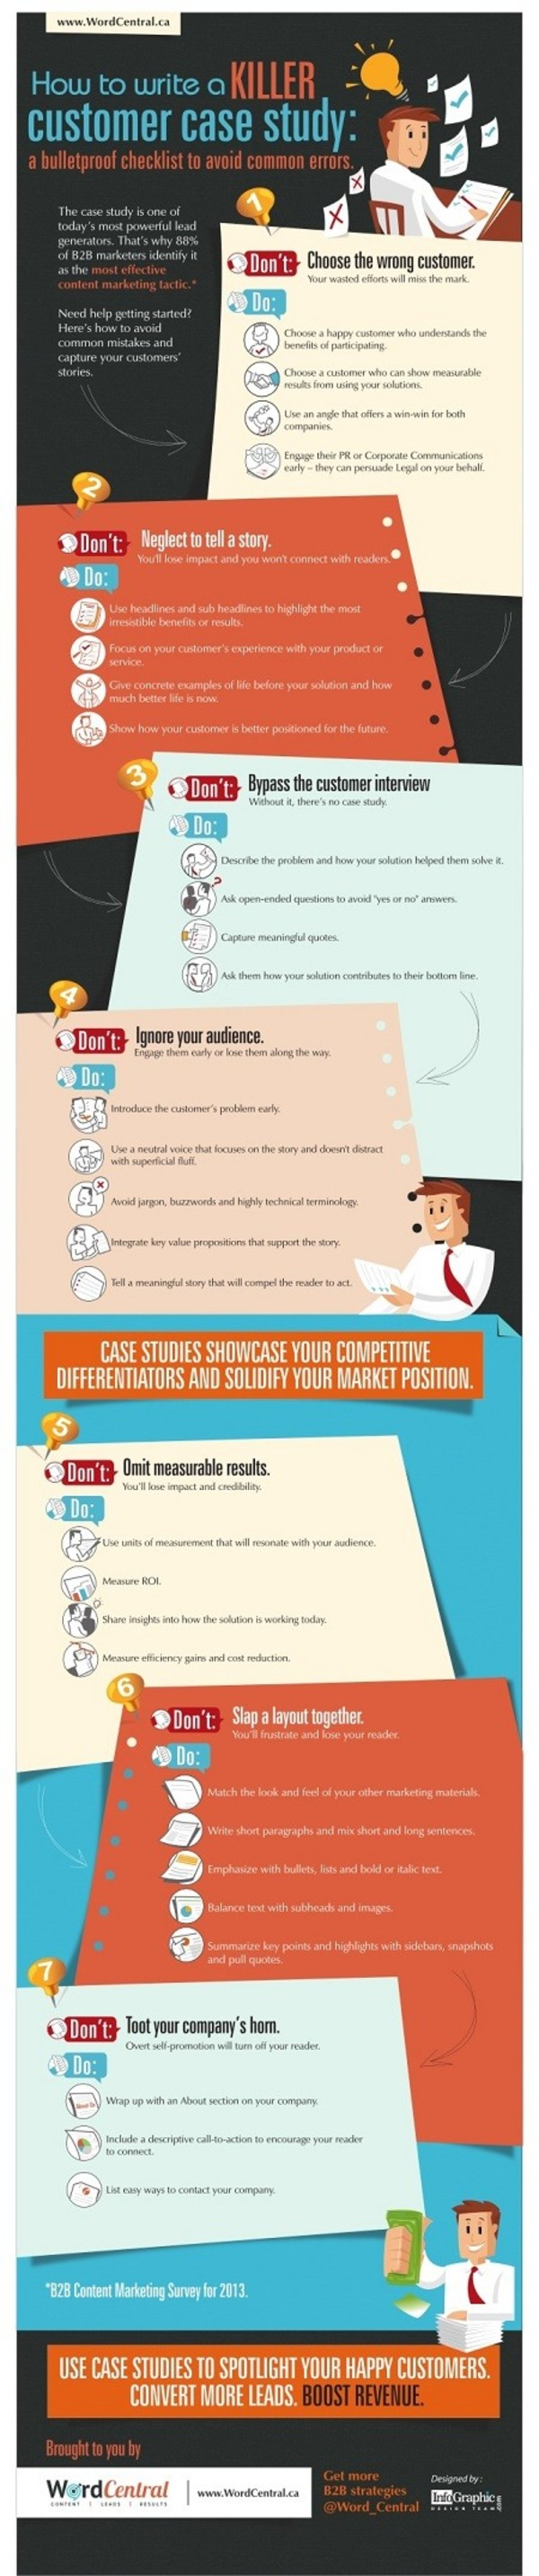 The Do's and Don'ts of Writing a Customer Case Study [Infographic] - Profs | The Marketing Technology Alert | Scoop.it